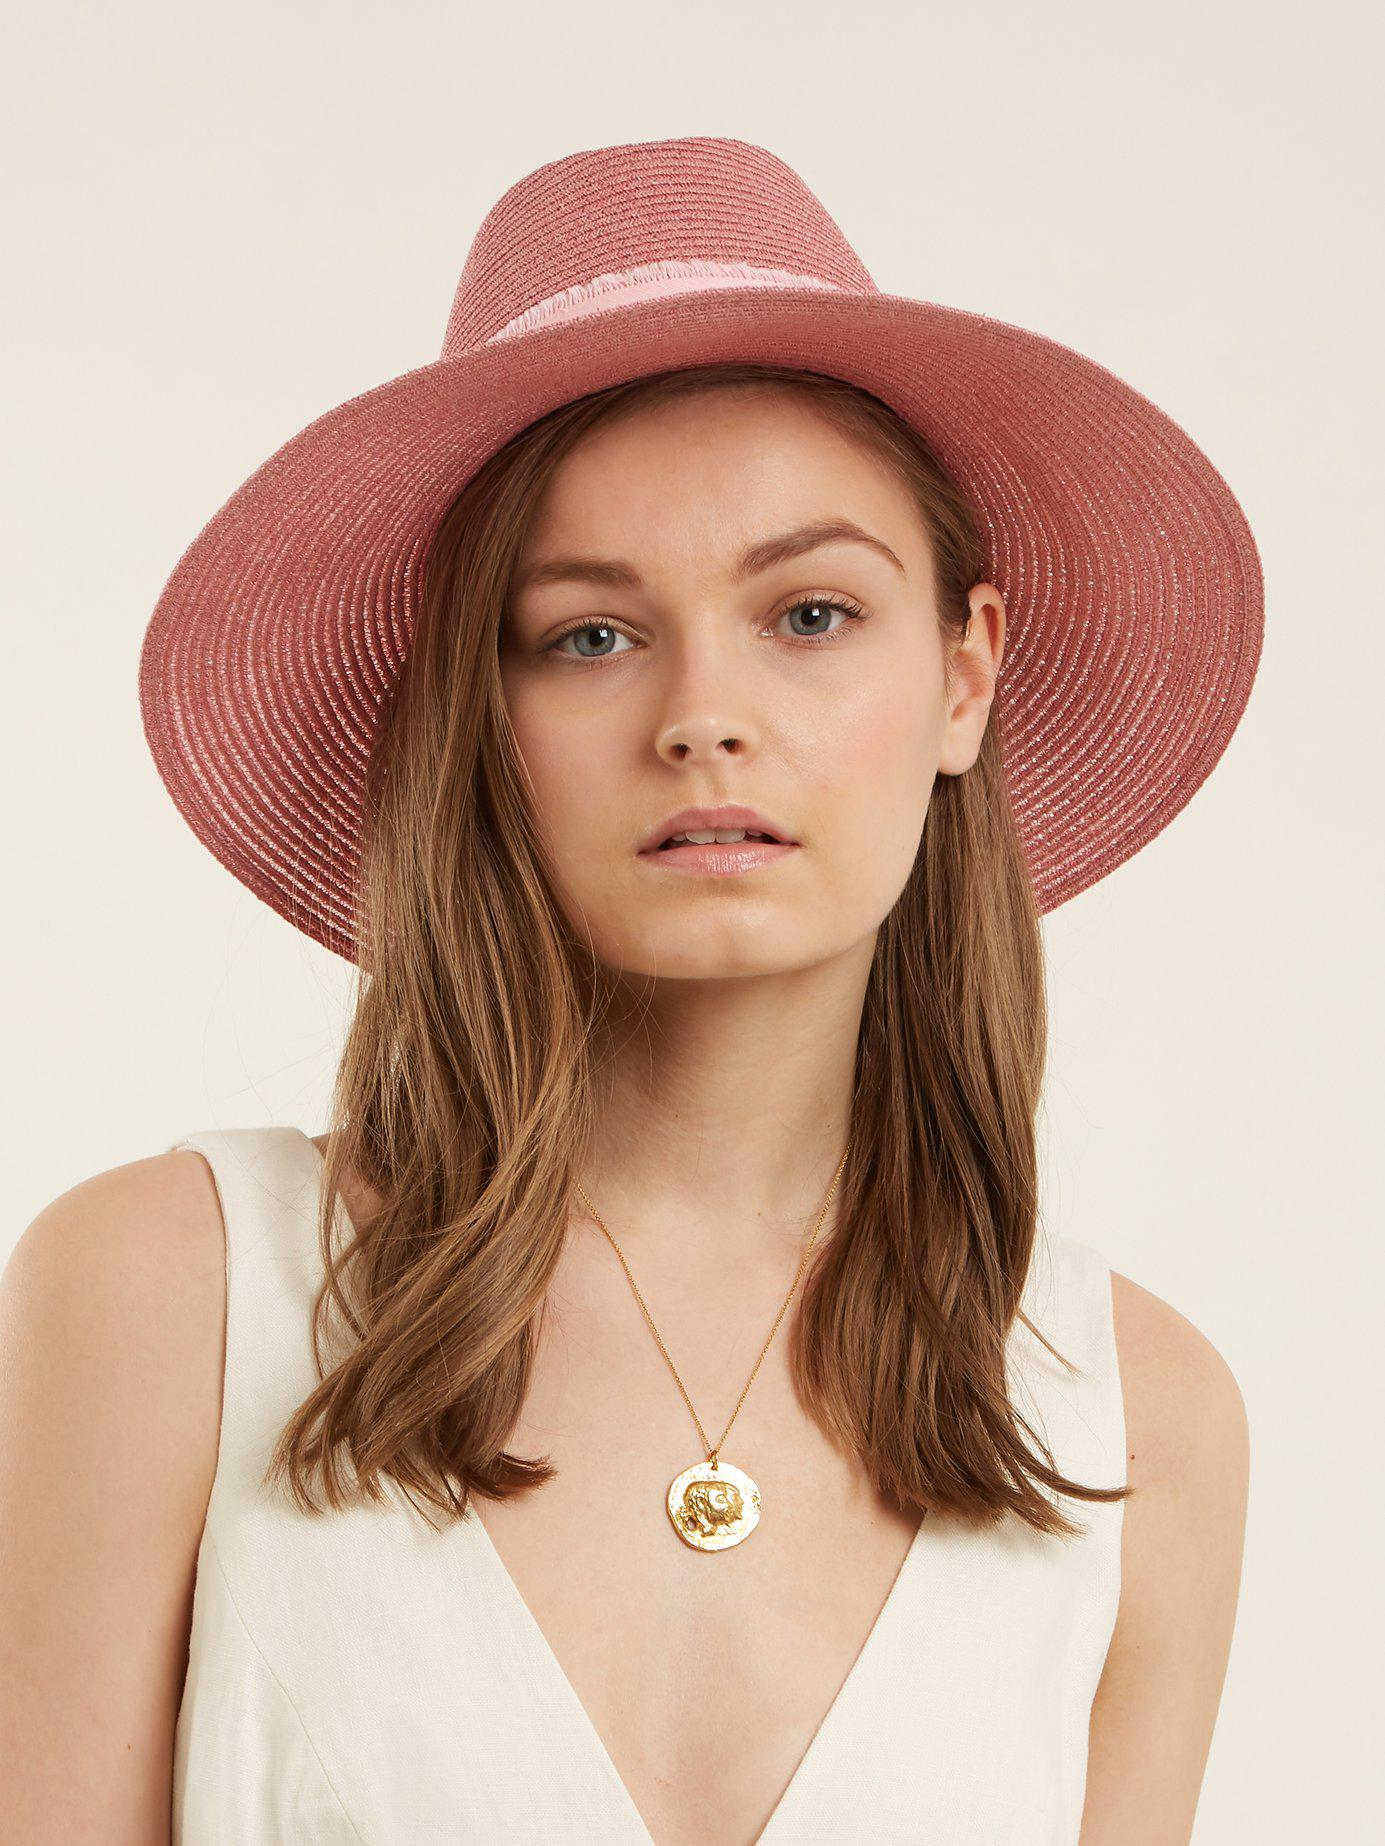 Lyst - Maison Michel Kate Straw Hat in Pink 40499b60abaa